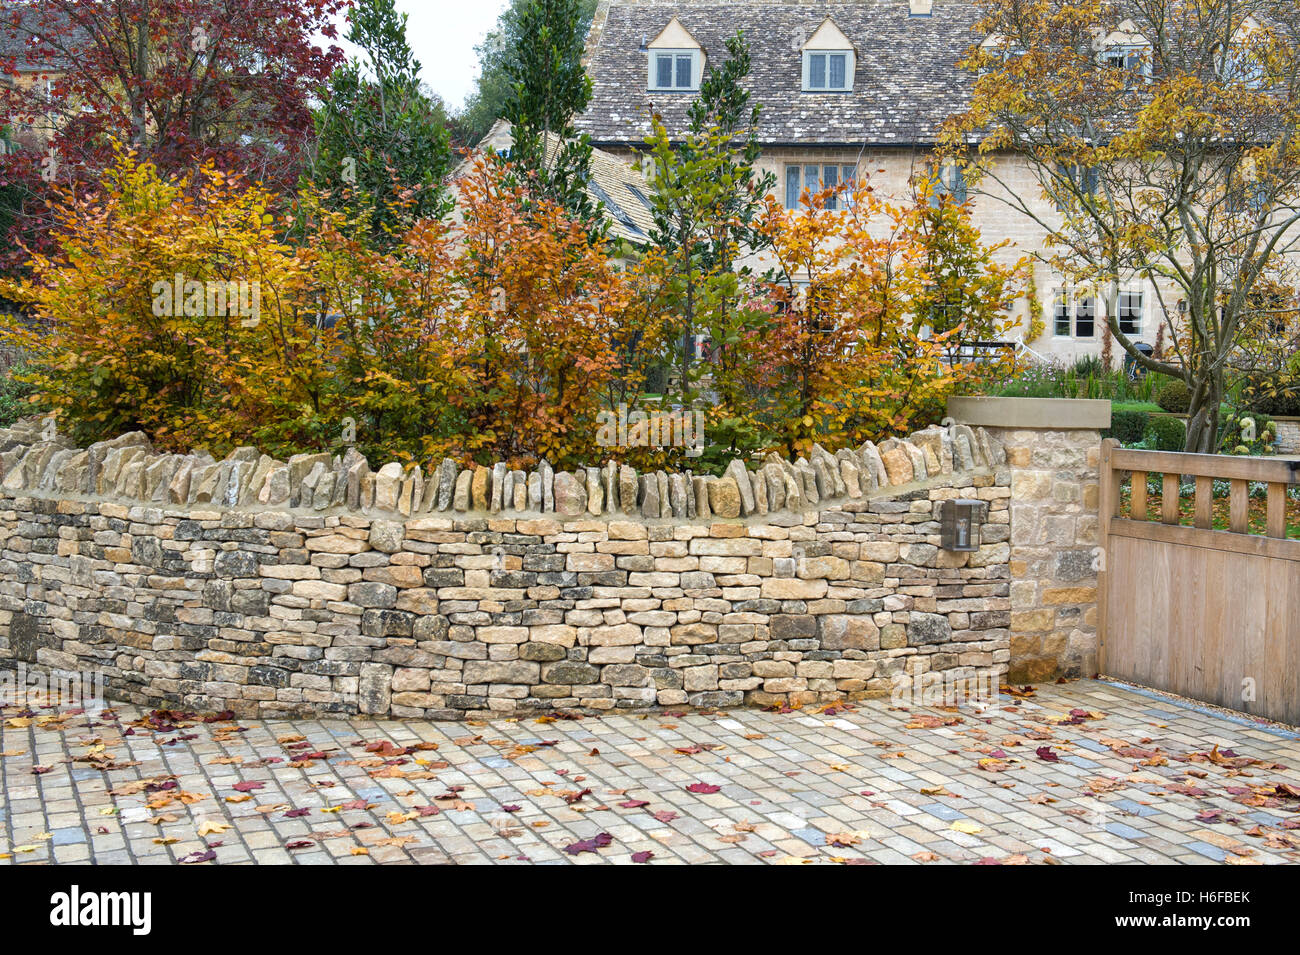 Stock Photo   Young Autumn Beech Trees And Dry Stone Wall In Blockley,  Cotswolds, Gloucestershire, England